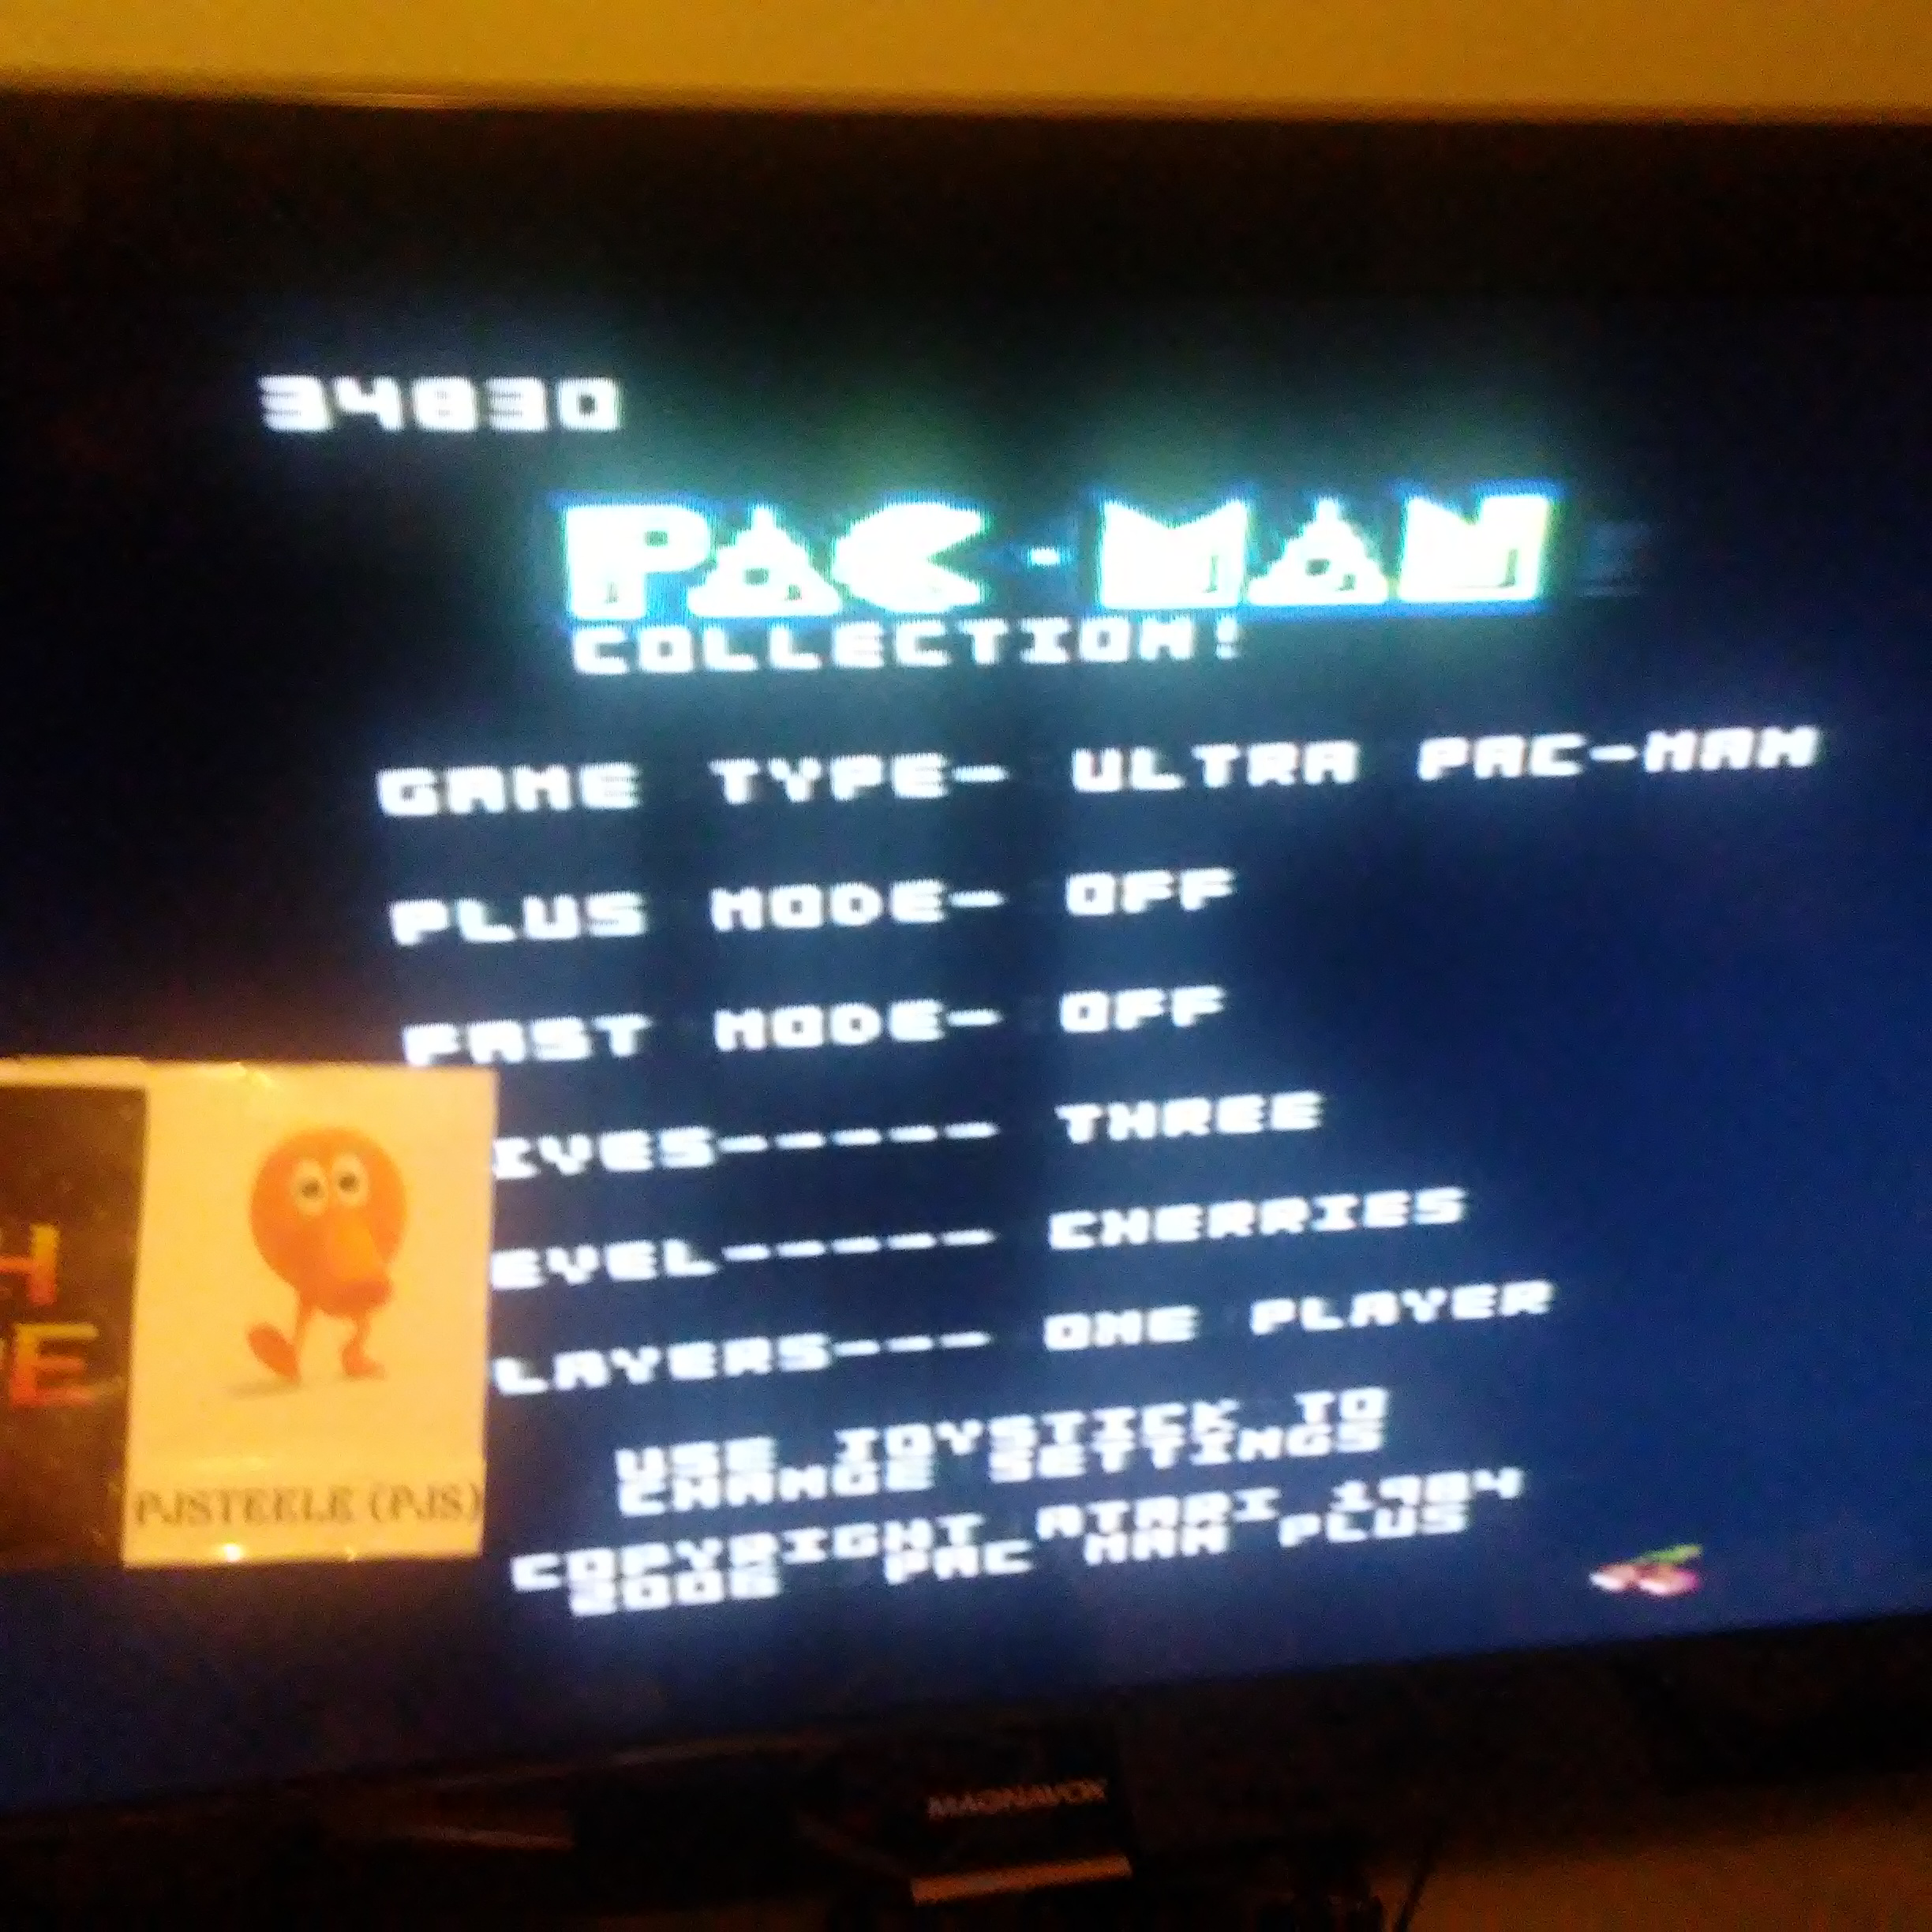 Pjsteele: Pac-Man Collection: Ultra Pac-Man [Cherries/Plus Off/Fast Off] (Atari 7800) 34,830 points on 2018-07-05 22:17:05